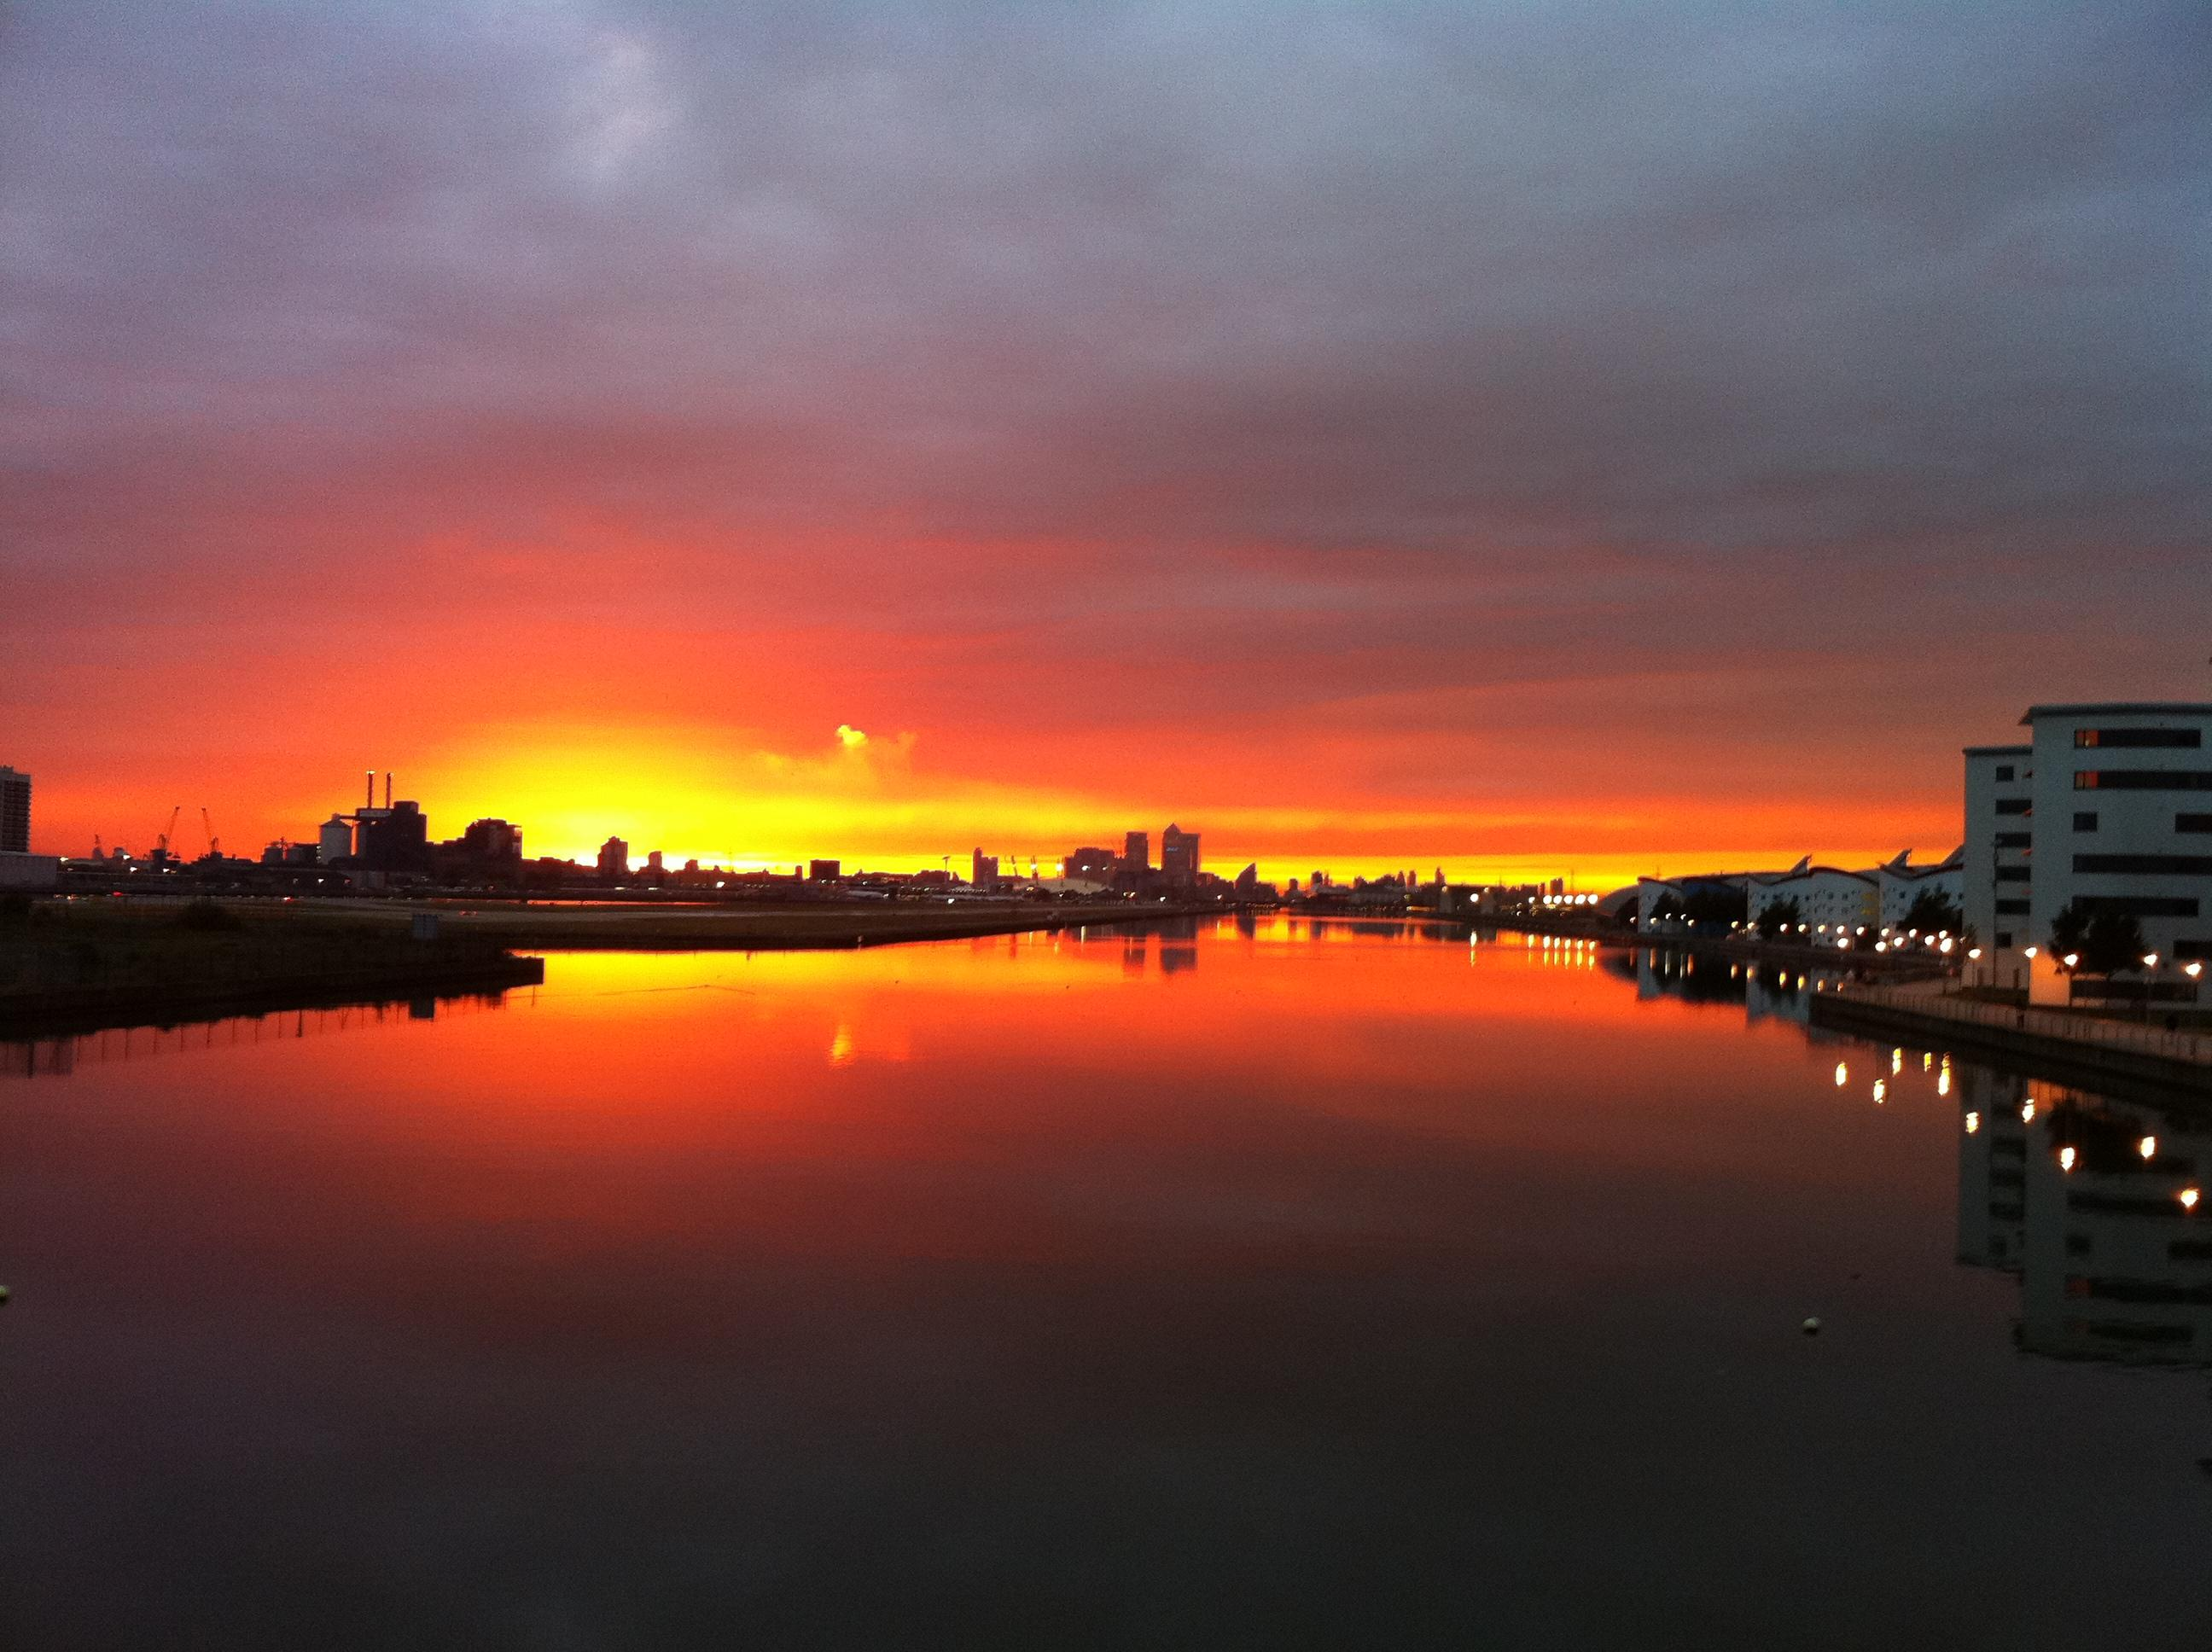 Sunset over the Royal Docks